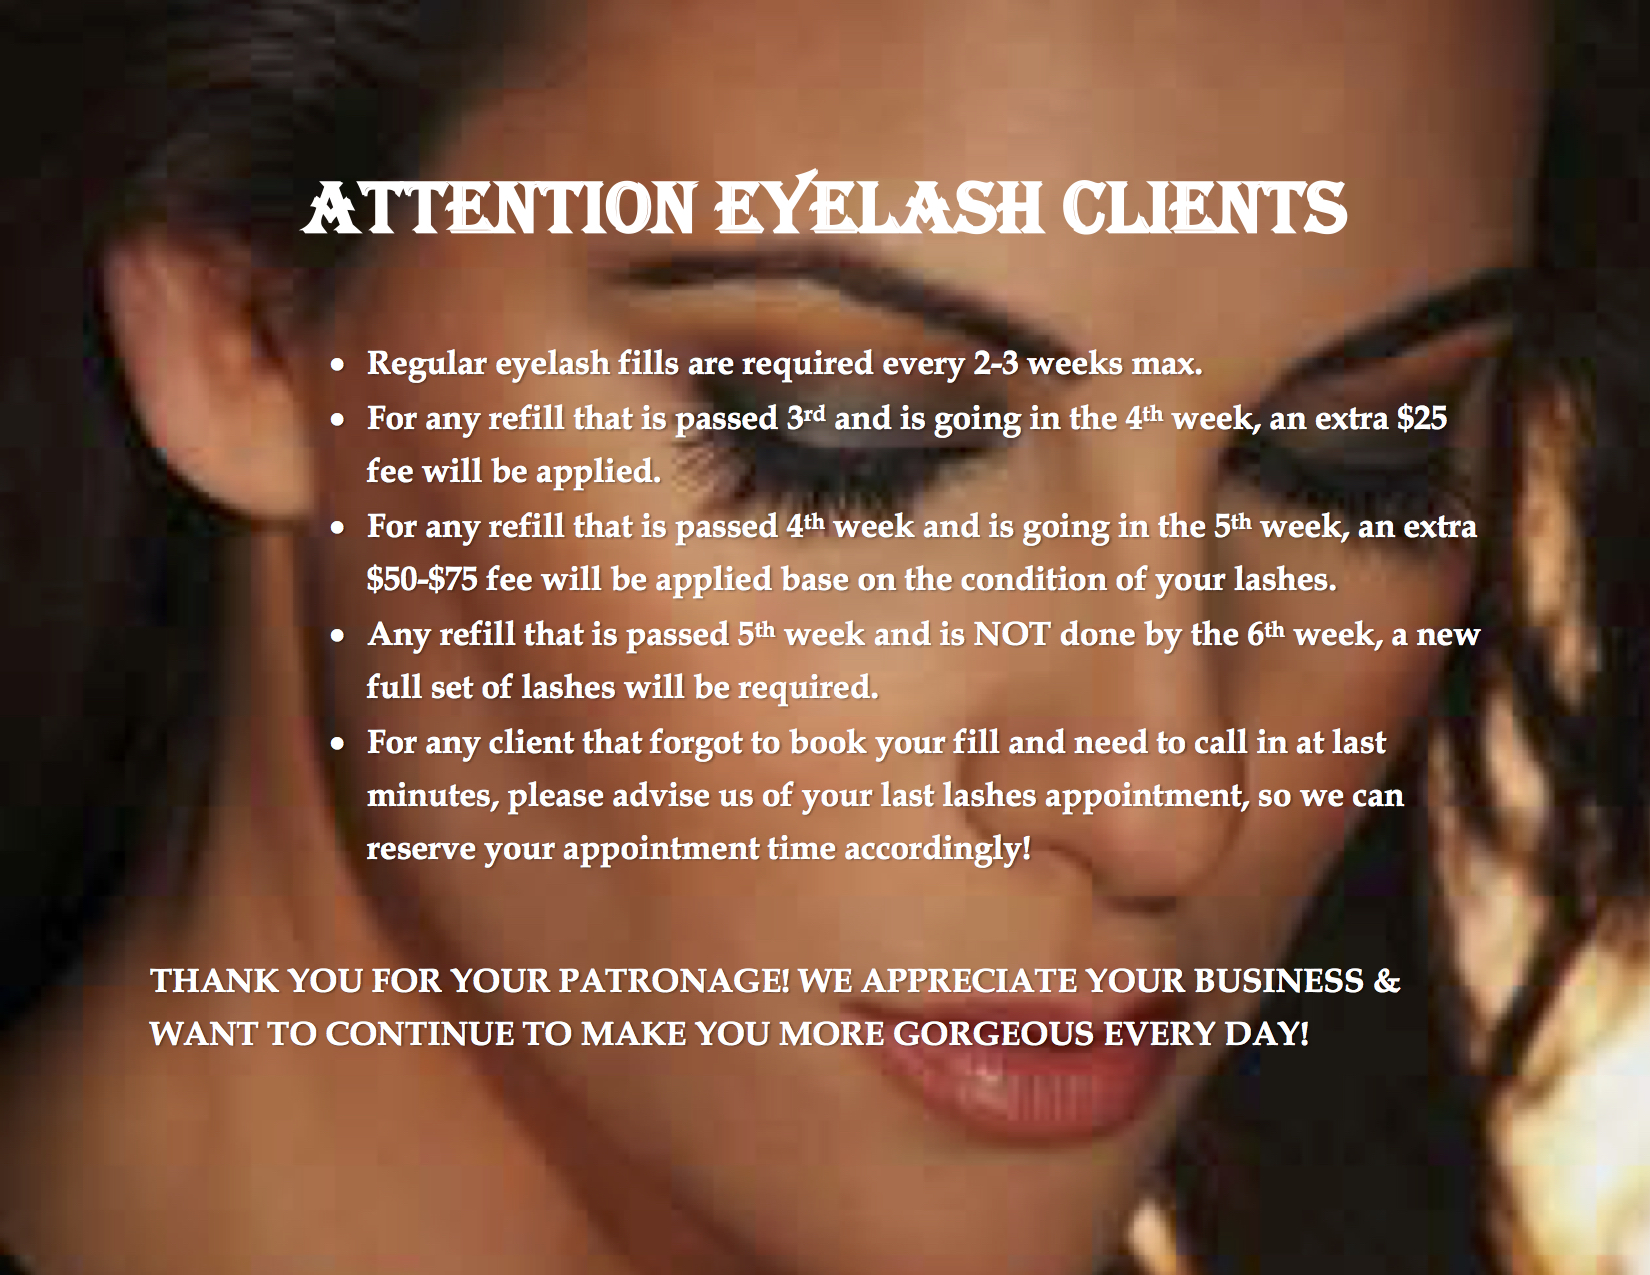 Attention Eyelash Clients opt3